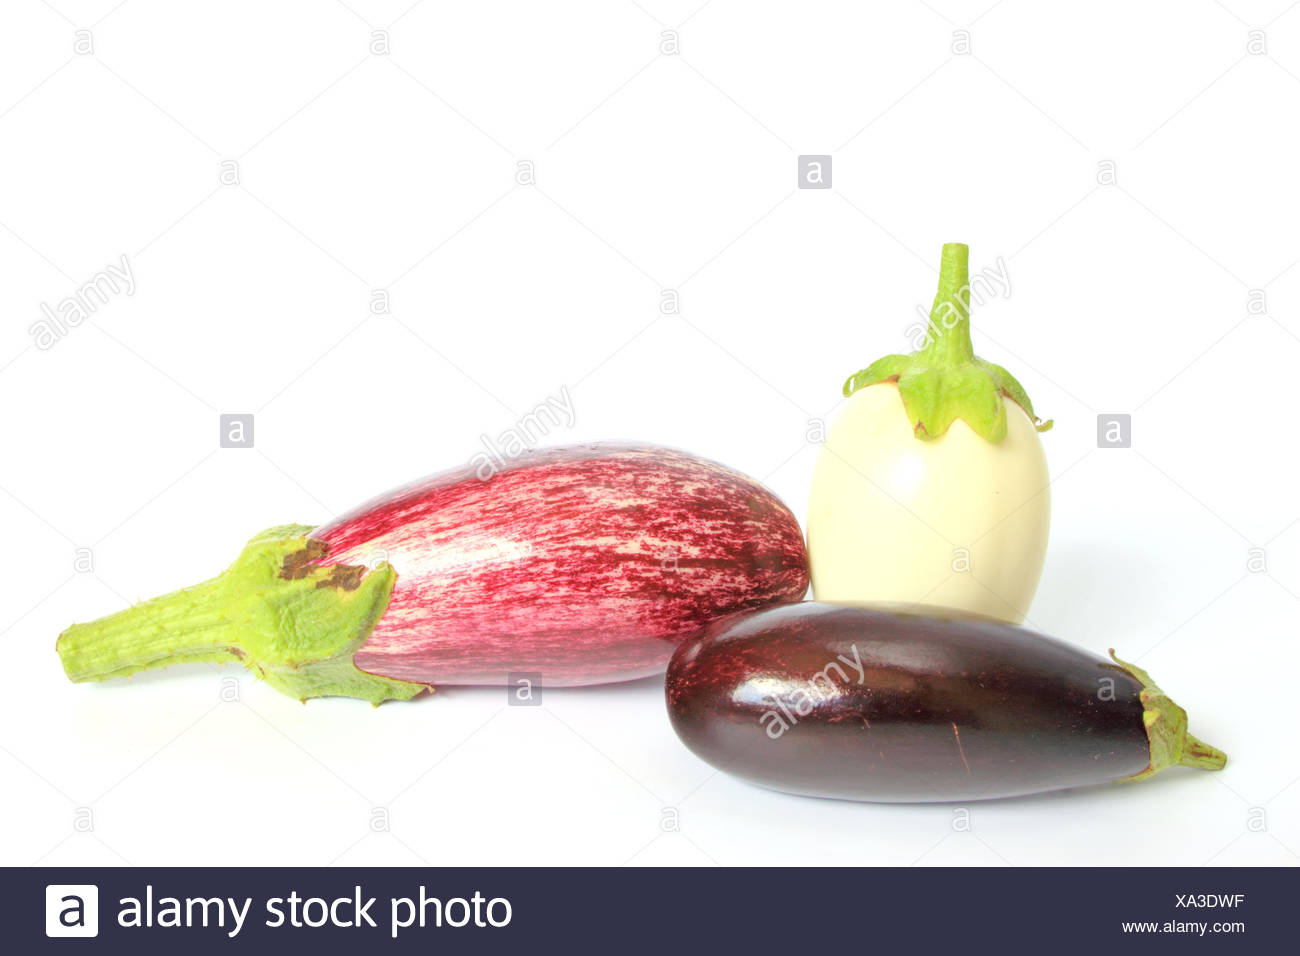 different types of aubergines Stock Photo